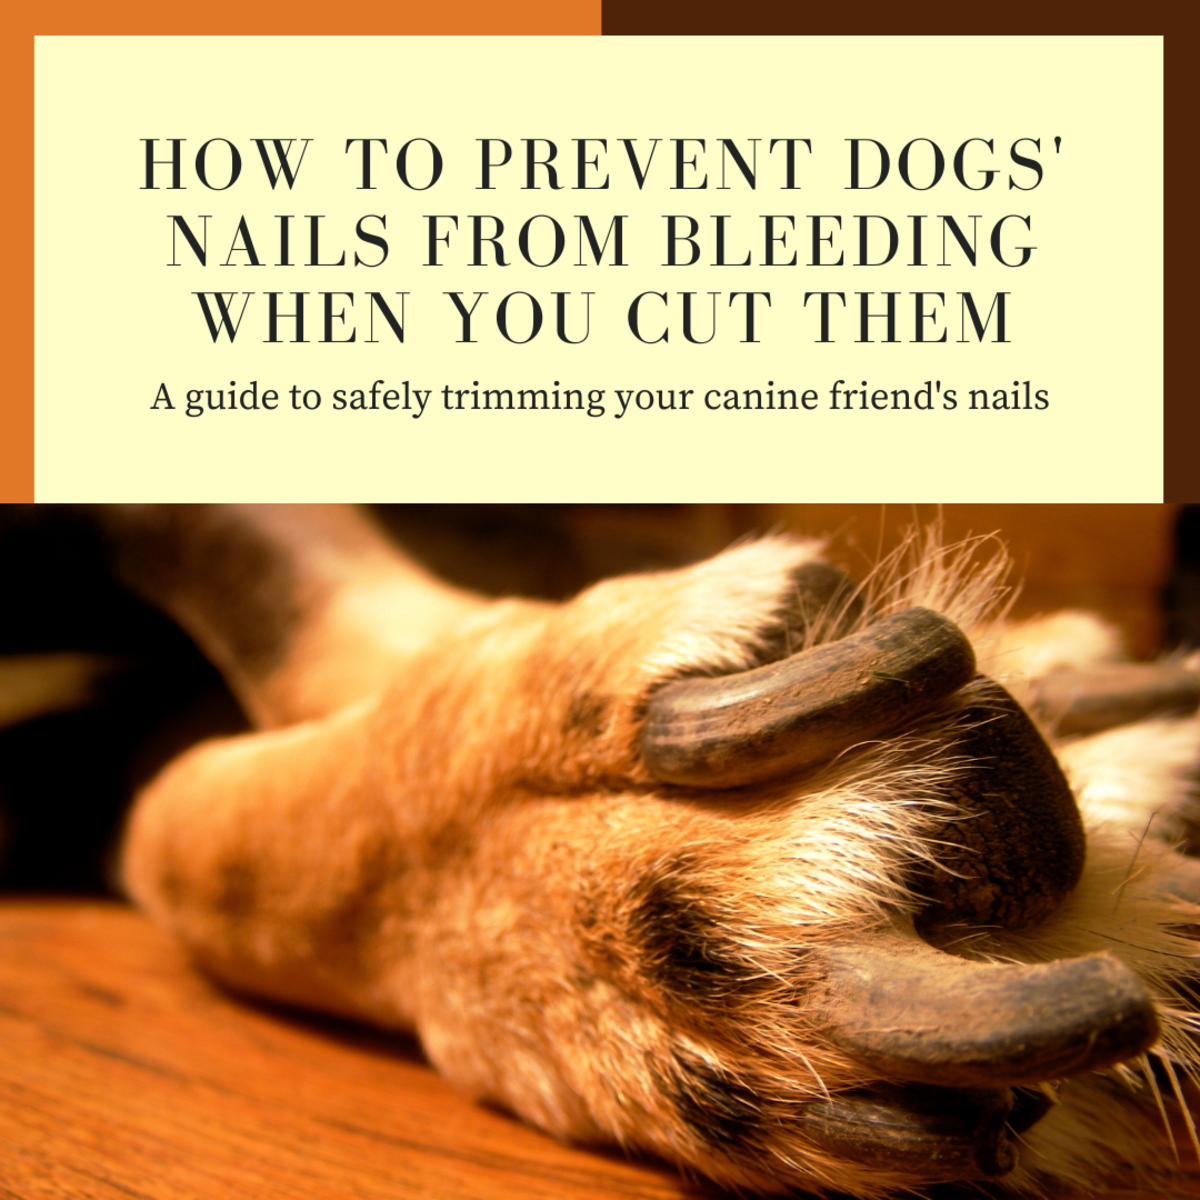 How to Prevent Dogs' Nails From Bleeding When You Cut Them